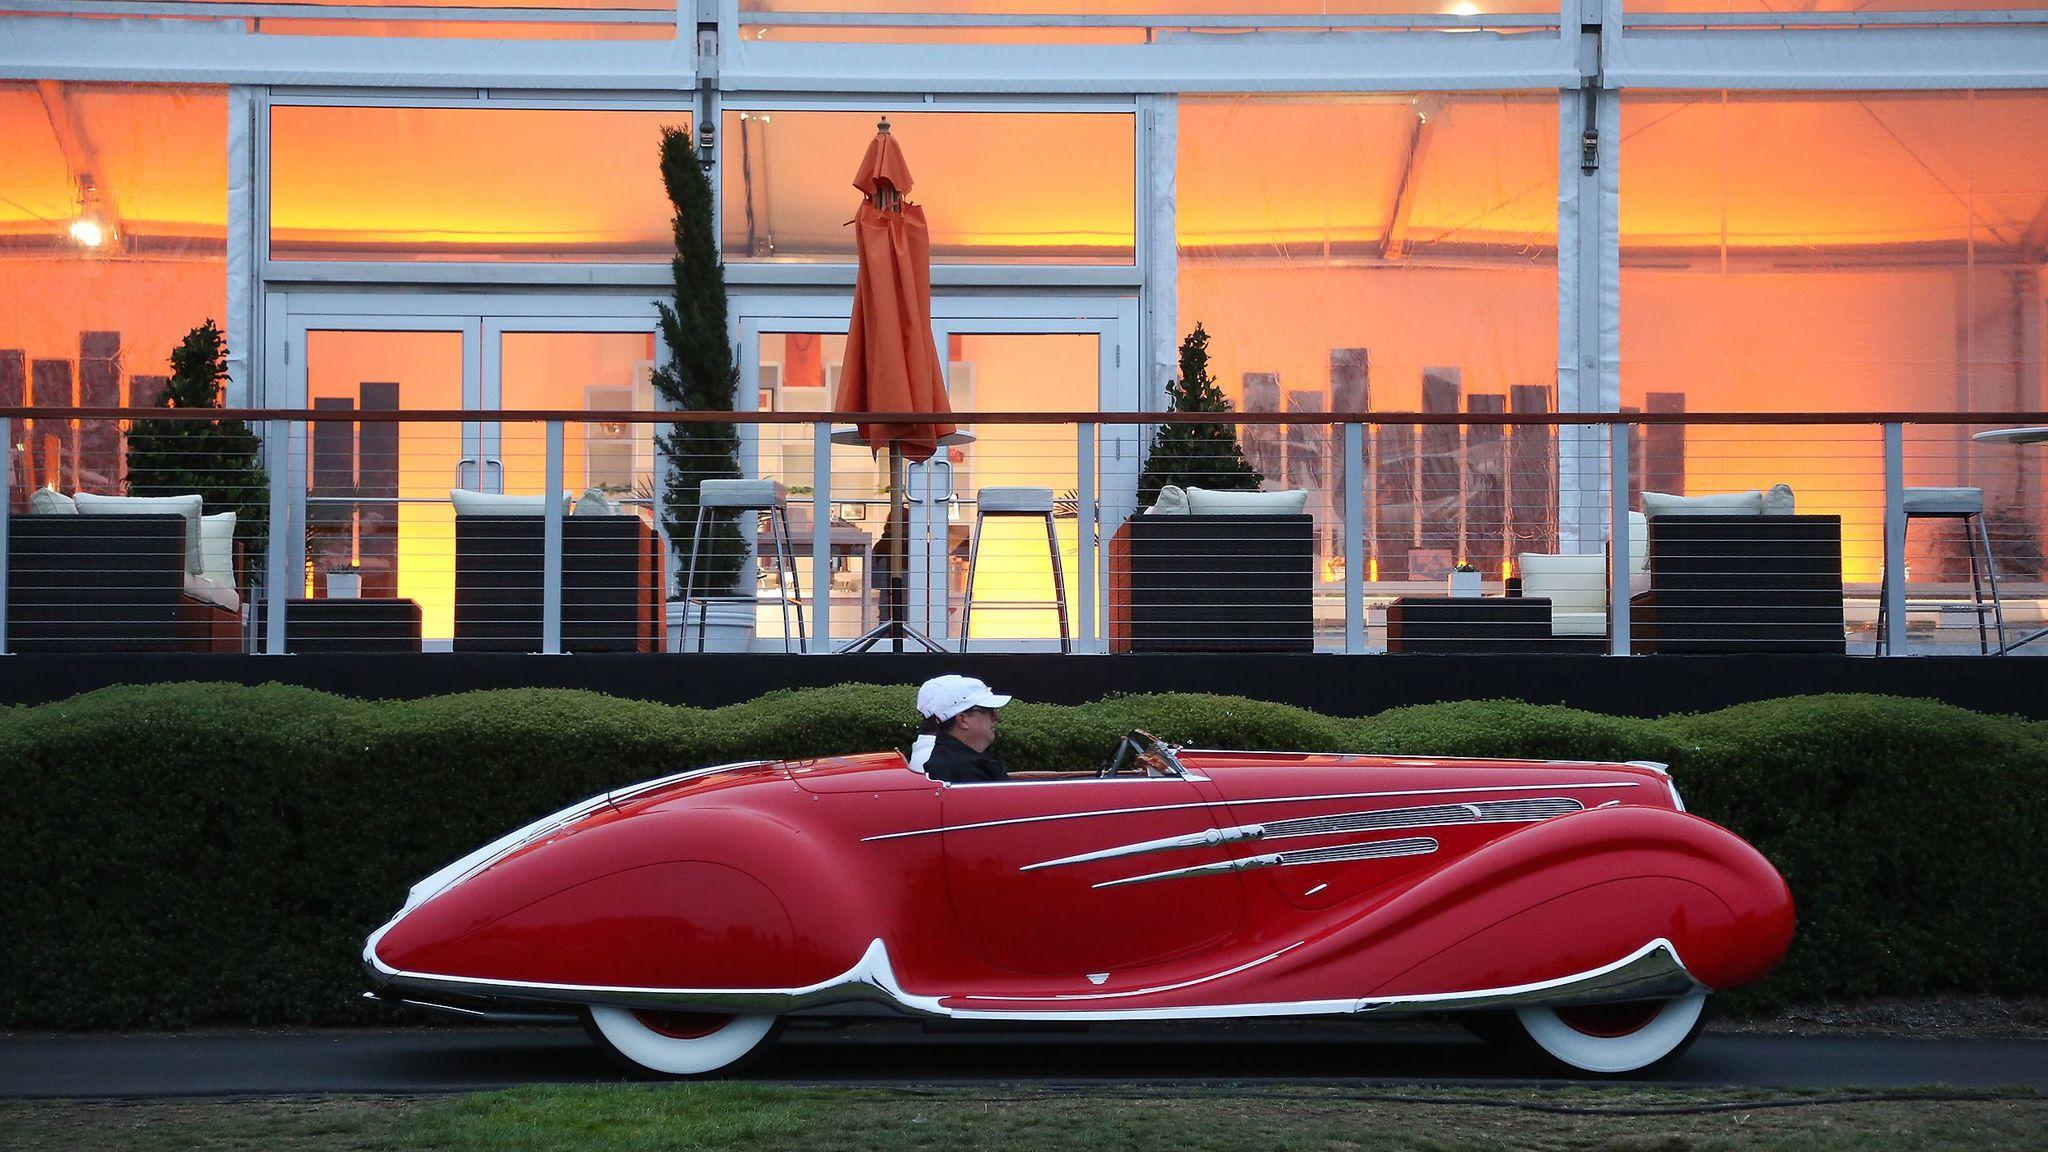 In Pebble Beach each August, you'll see this kind of jewel – a 1938 Delahaye 165 Figoni & Falaschi Cabriolet. (Myung J. Chun / Los Angeles Times)